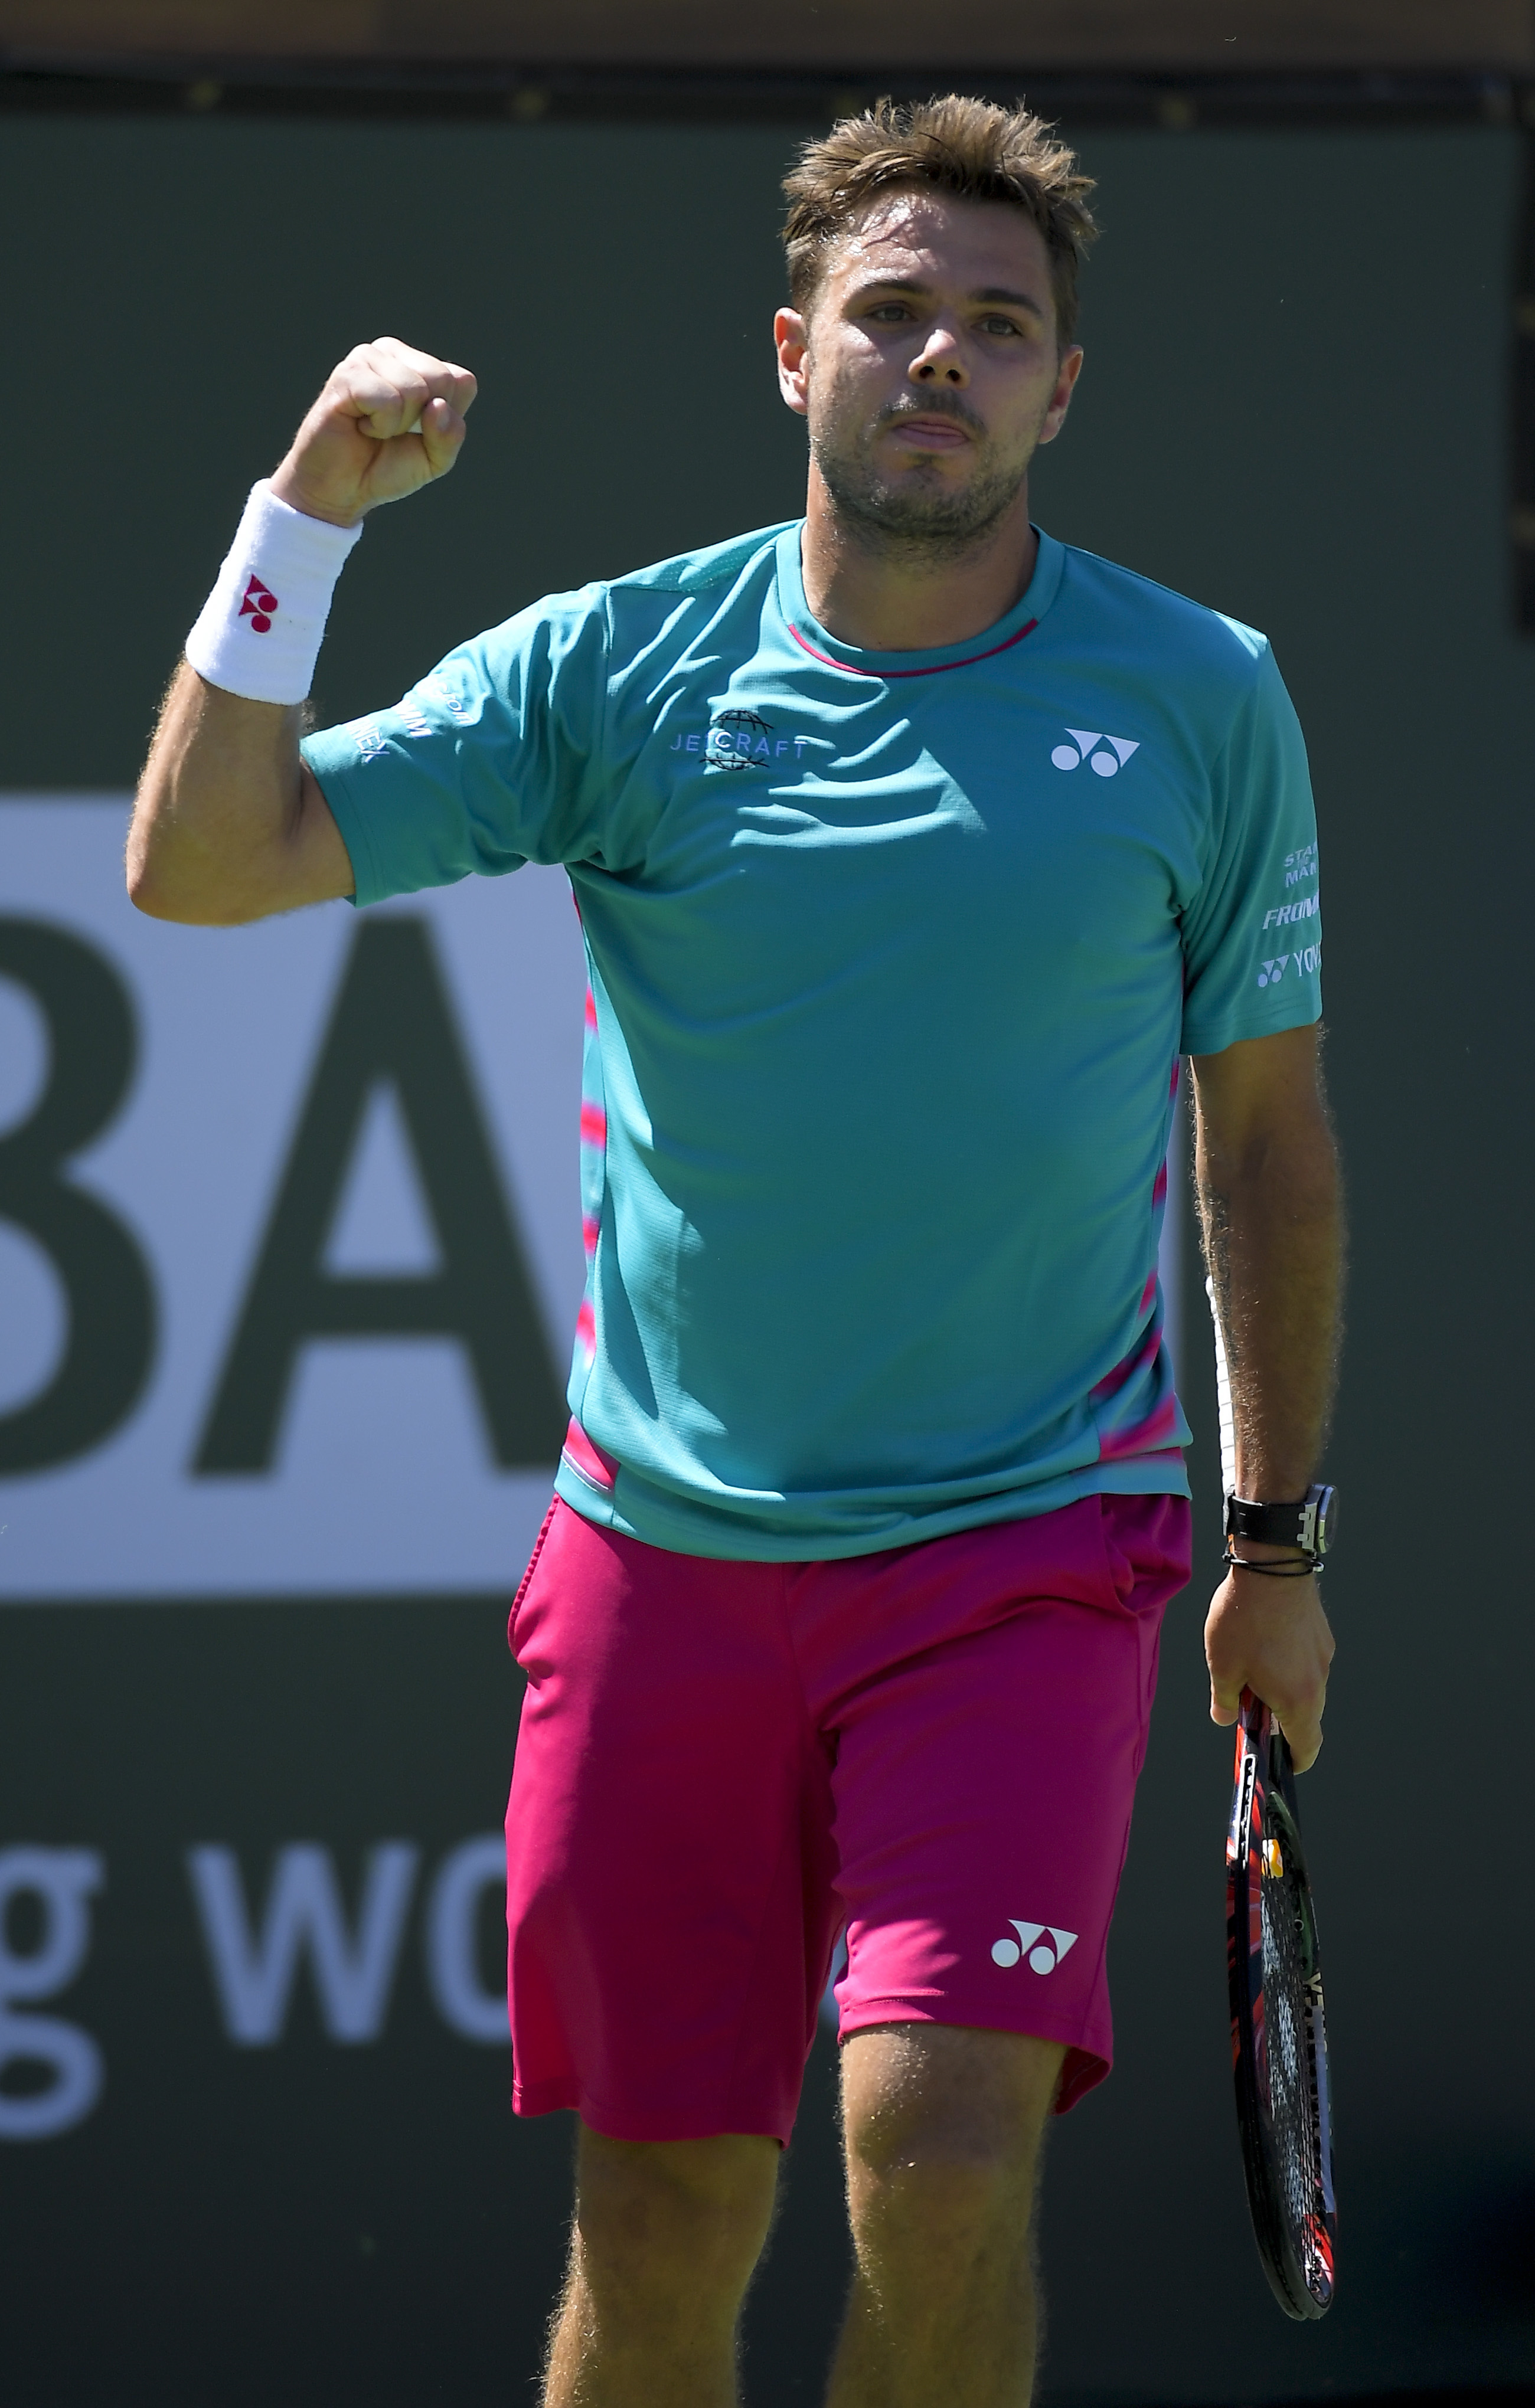 Stanislas Wawrinka, of Switzerland, celebrates beating Pablo Carreno Busta, of Spain, during a semifinal match at the BNP Paribas Open tennis tournament, Saturday, March 18, 2017, in Indian Wells, Calif. (AP Photo/Mark J. Terrill)